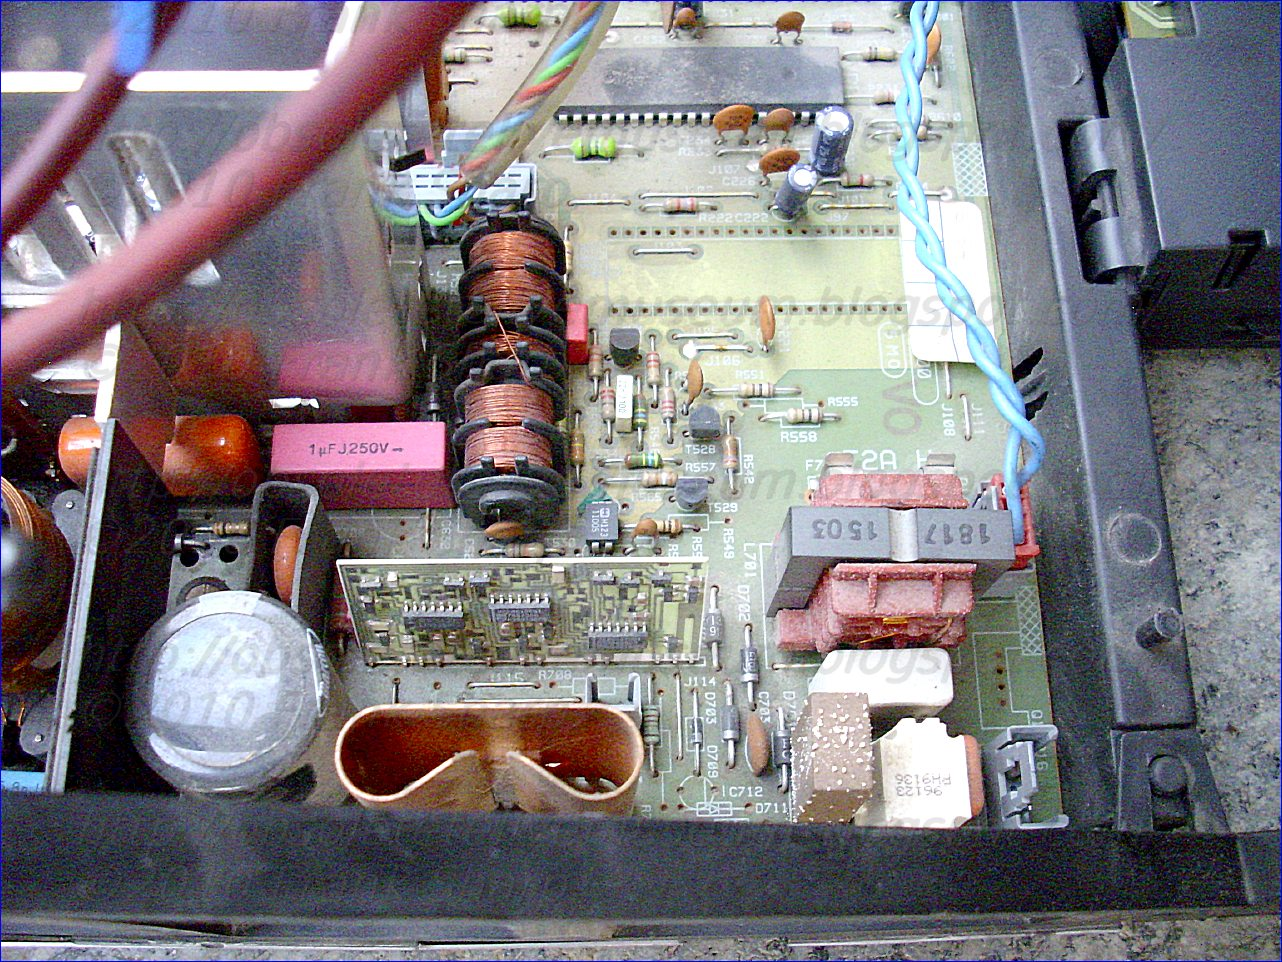 Obsolete Technology Tellye Hitachi Cs2562ta Chassis Eurodigi 4 3 506 X 331 250 Kb Jpeg How To Wire A Gfci Circuit Power Supply Device As In Claim 2 Characterized By The Fact That Regulation 40 Contains An Unstable Multivibrator 48 Whose Output Is